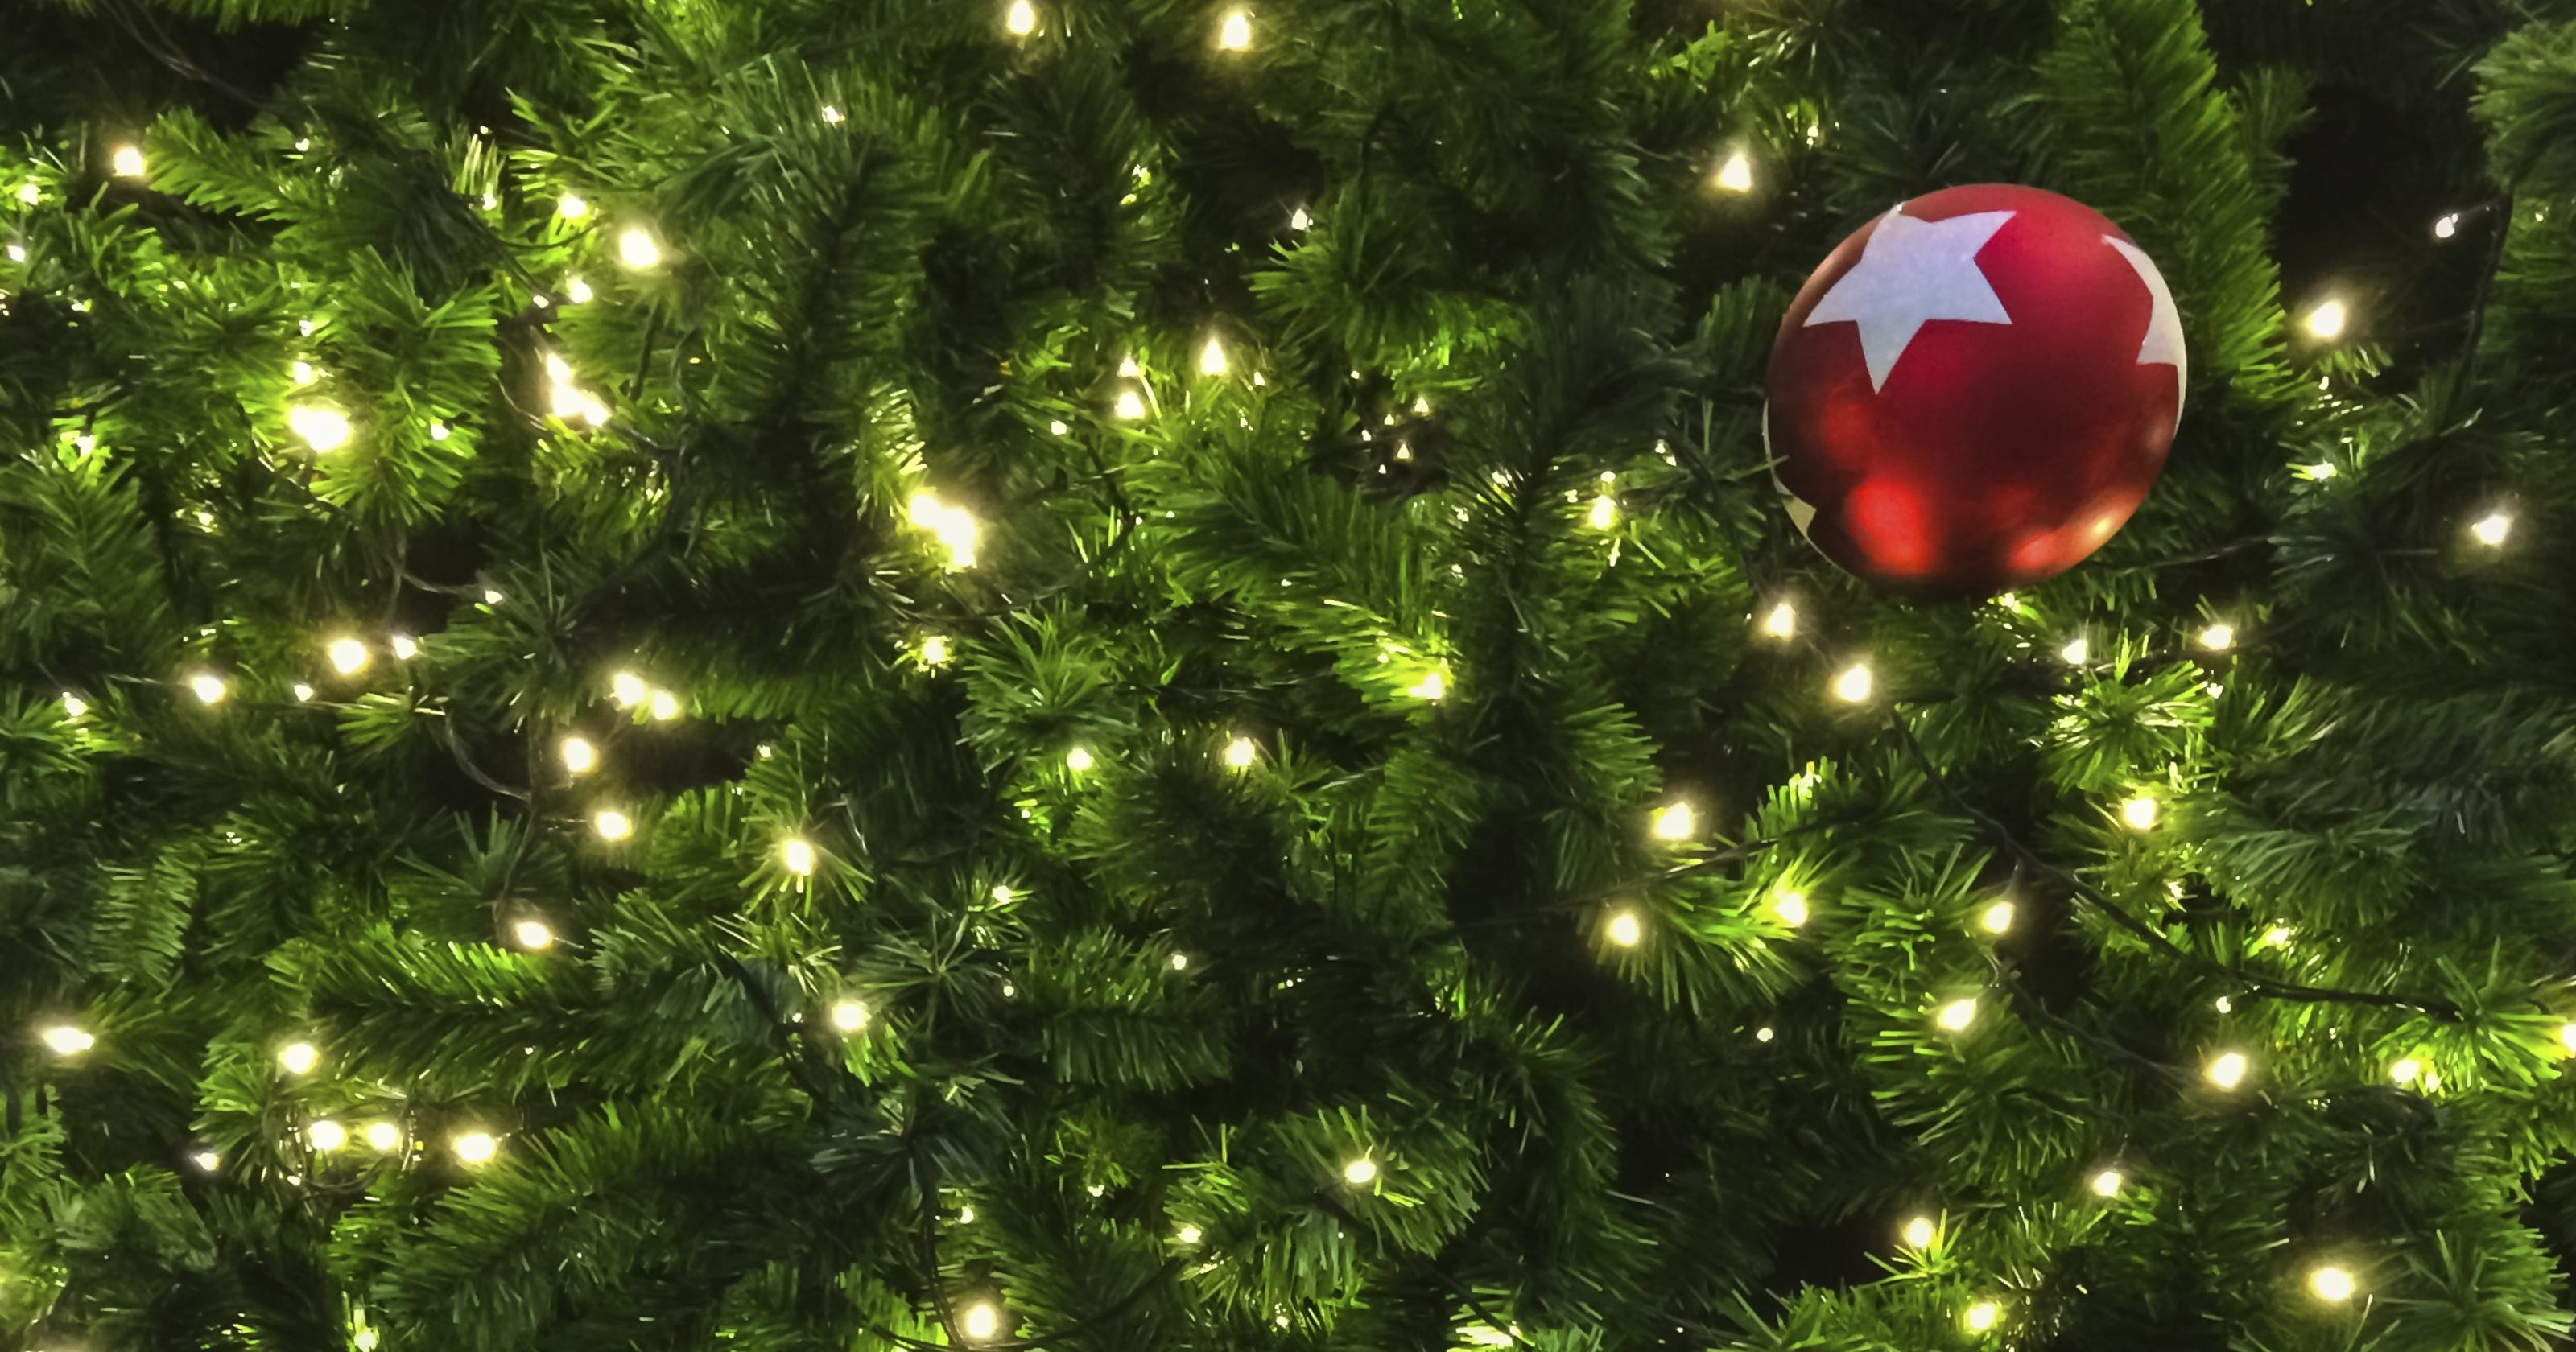 schumer urges usps to waive shipping restrictions on christmas trees - Usps Delivery Christmas Eve